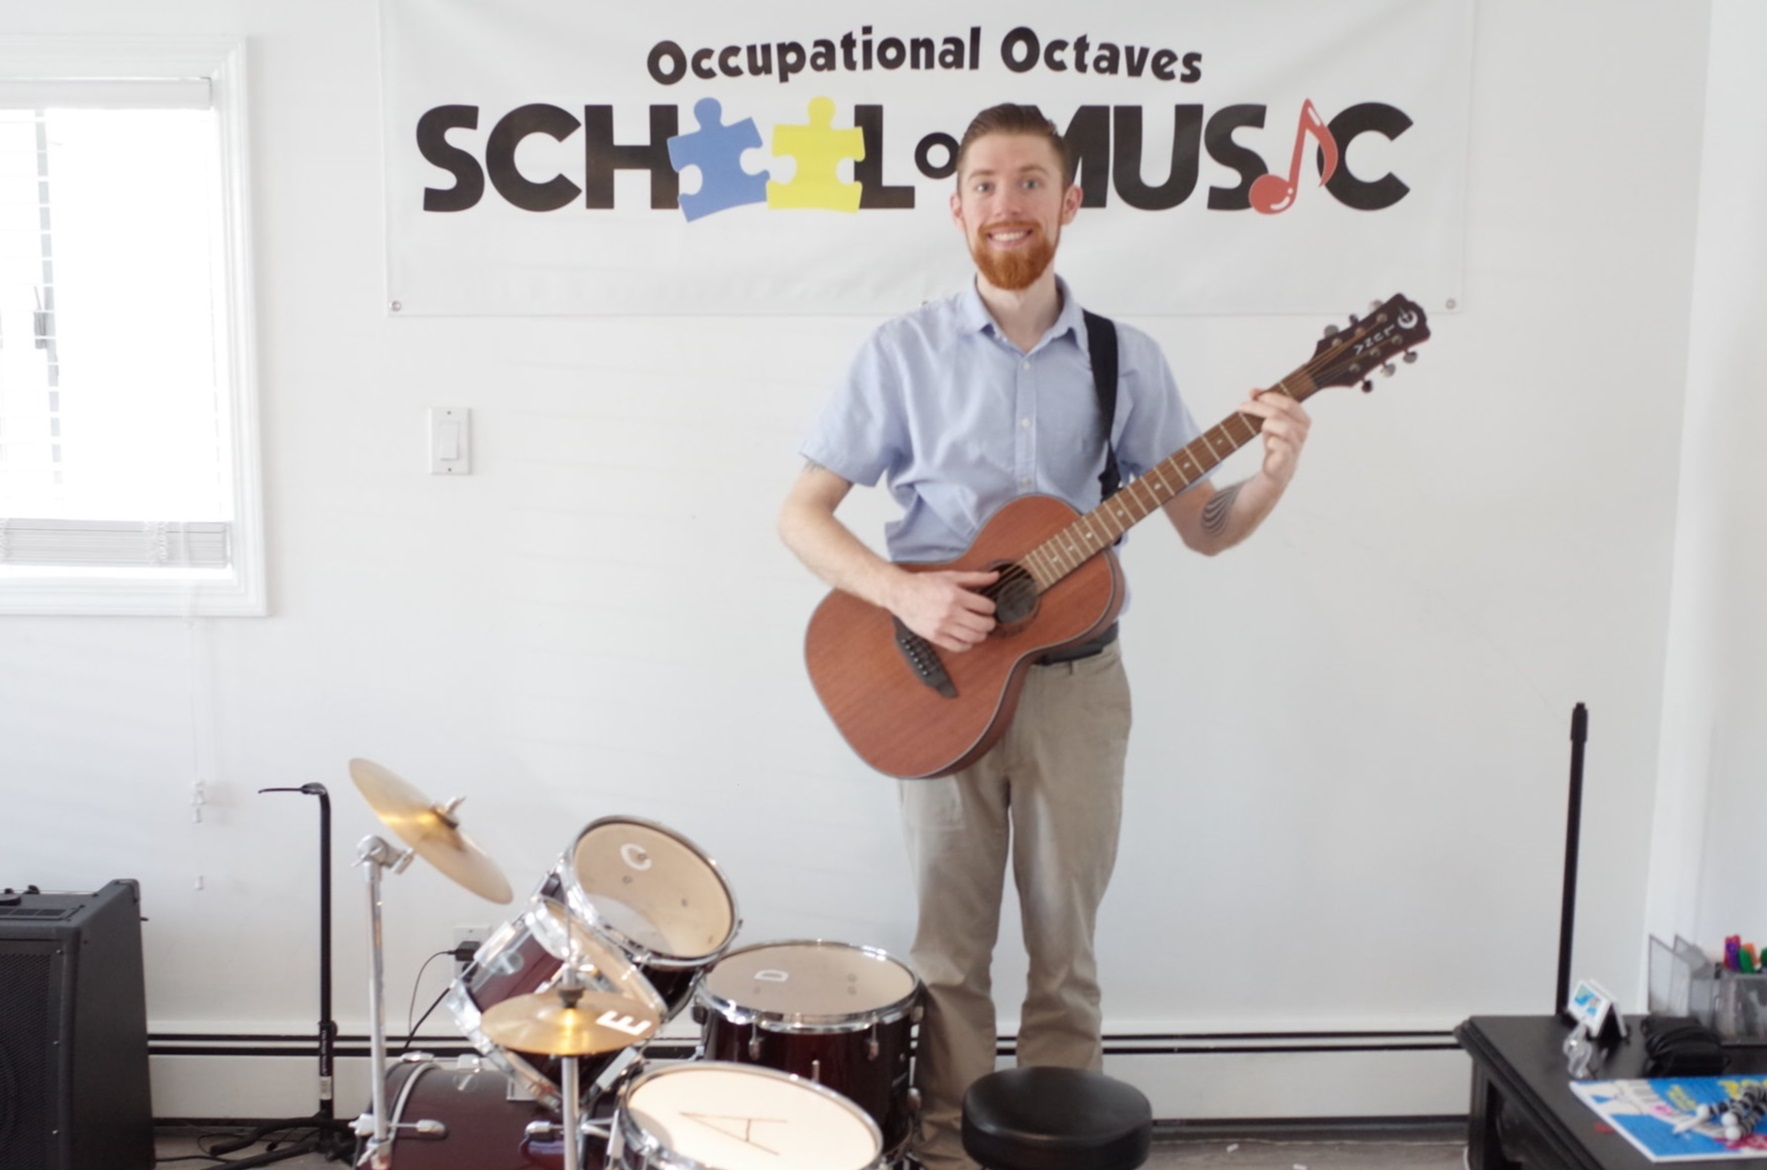 Michael Russo, Our Board-Certified Music Therapist & Experienced Occupationa Octaves Instructor